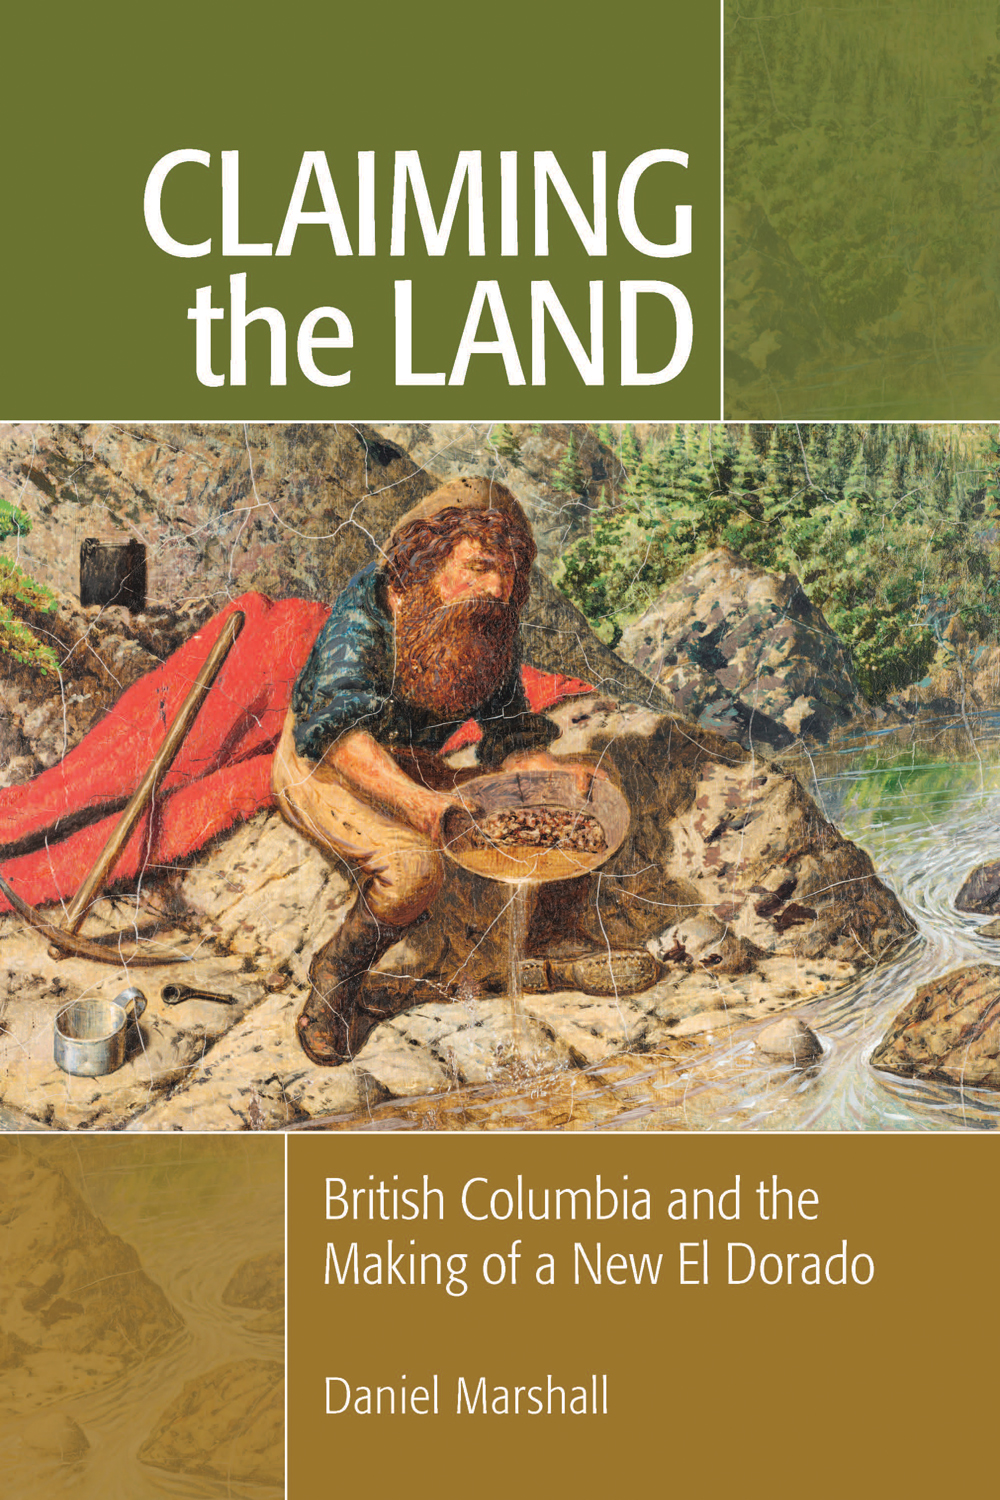 Claiming the Land: British Columbia and the Making of a New El Dorado